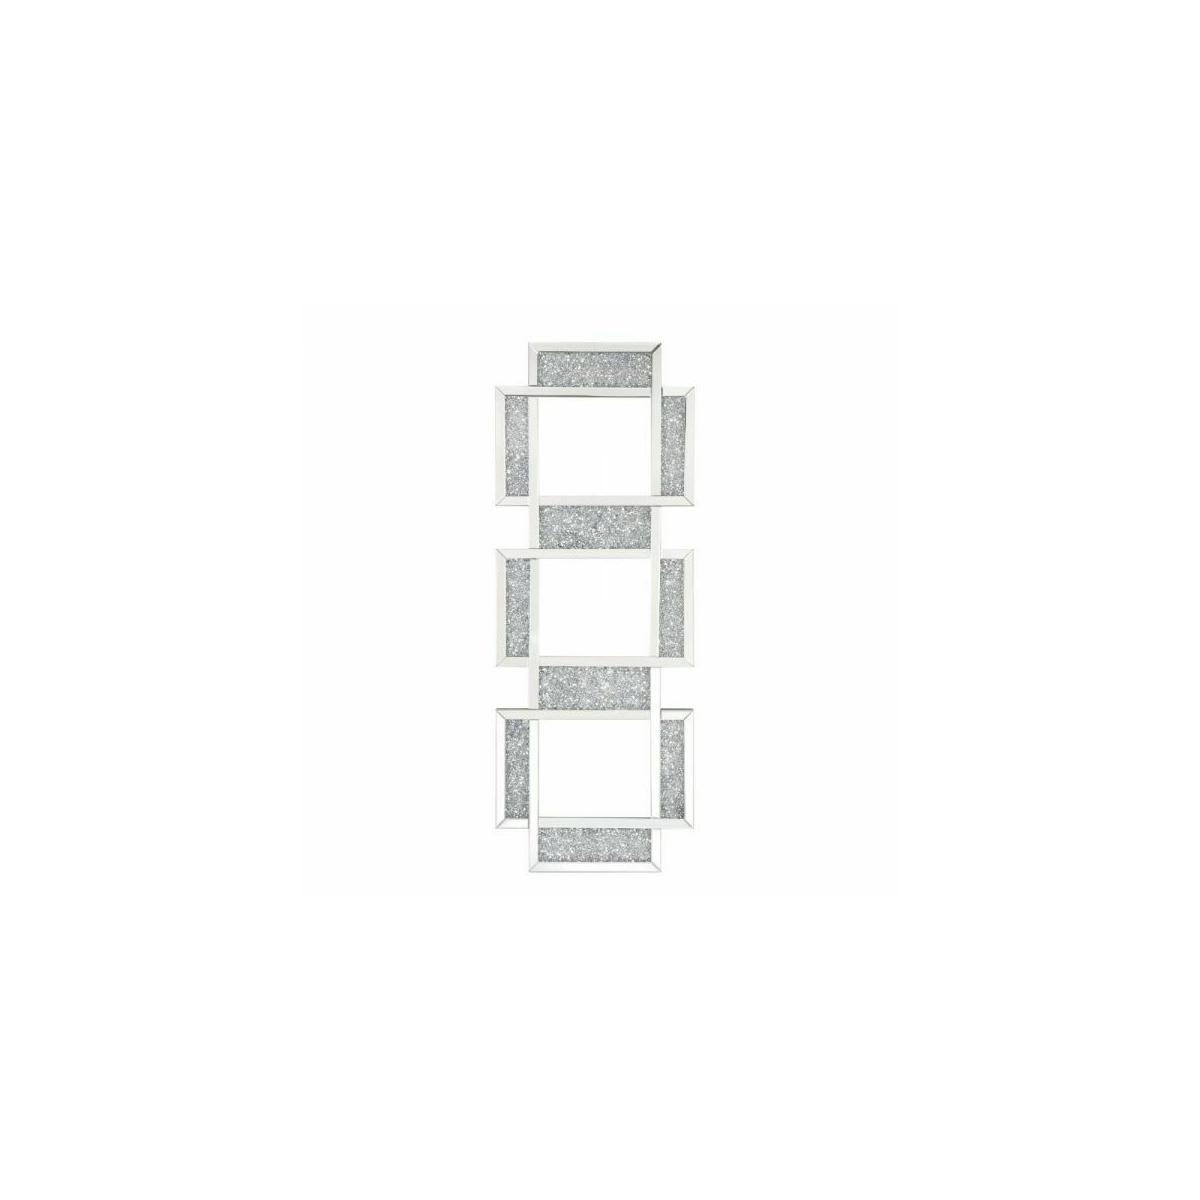 ACME Noralie Wall Decor - 97721 - Glam - Glass, MDF, Faux Diamonds (Acrylic), LED - Mirrored and Faux Diamonds